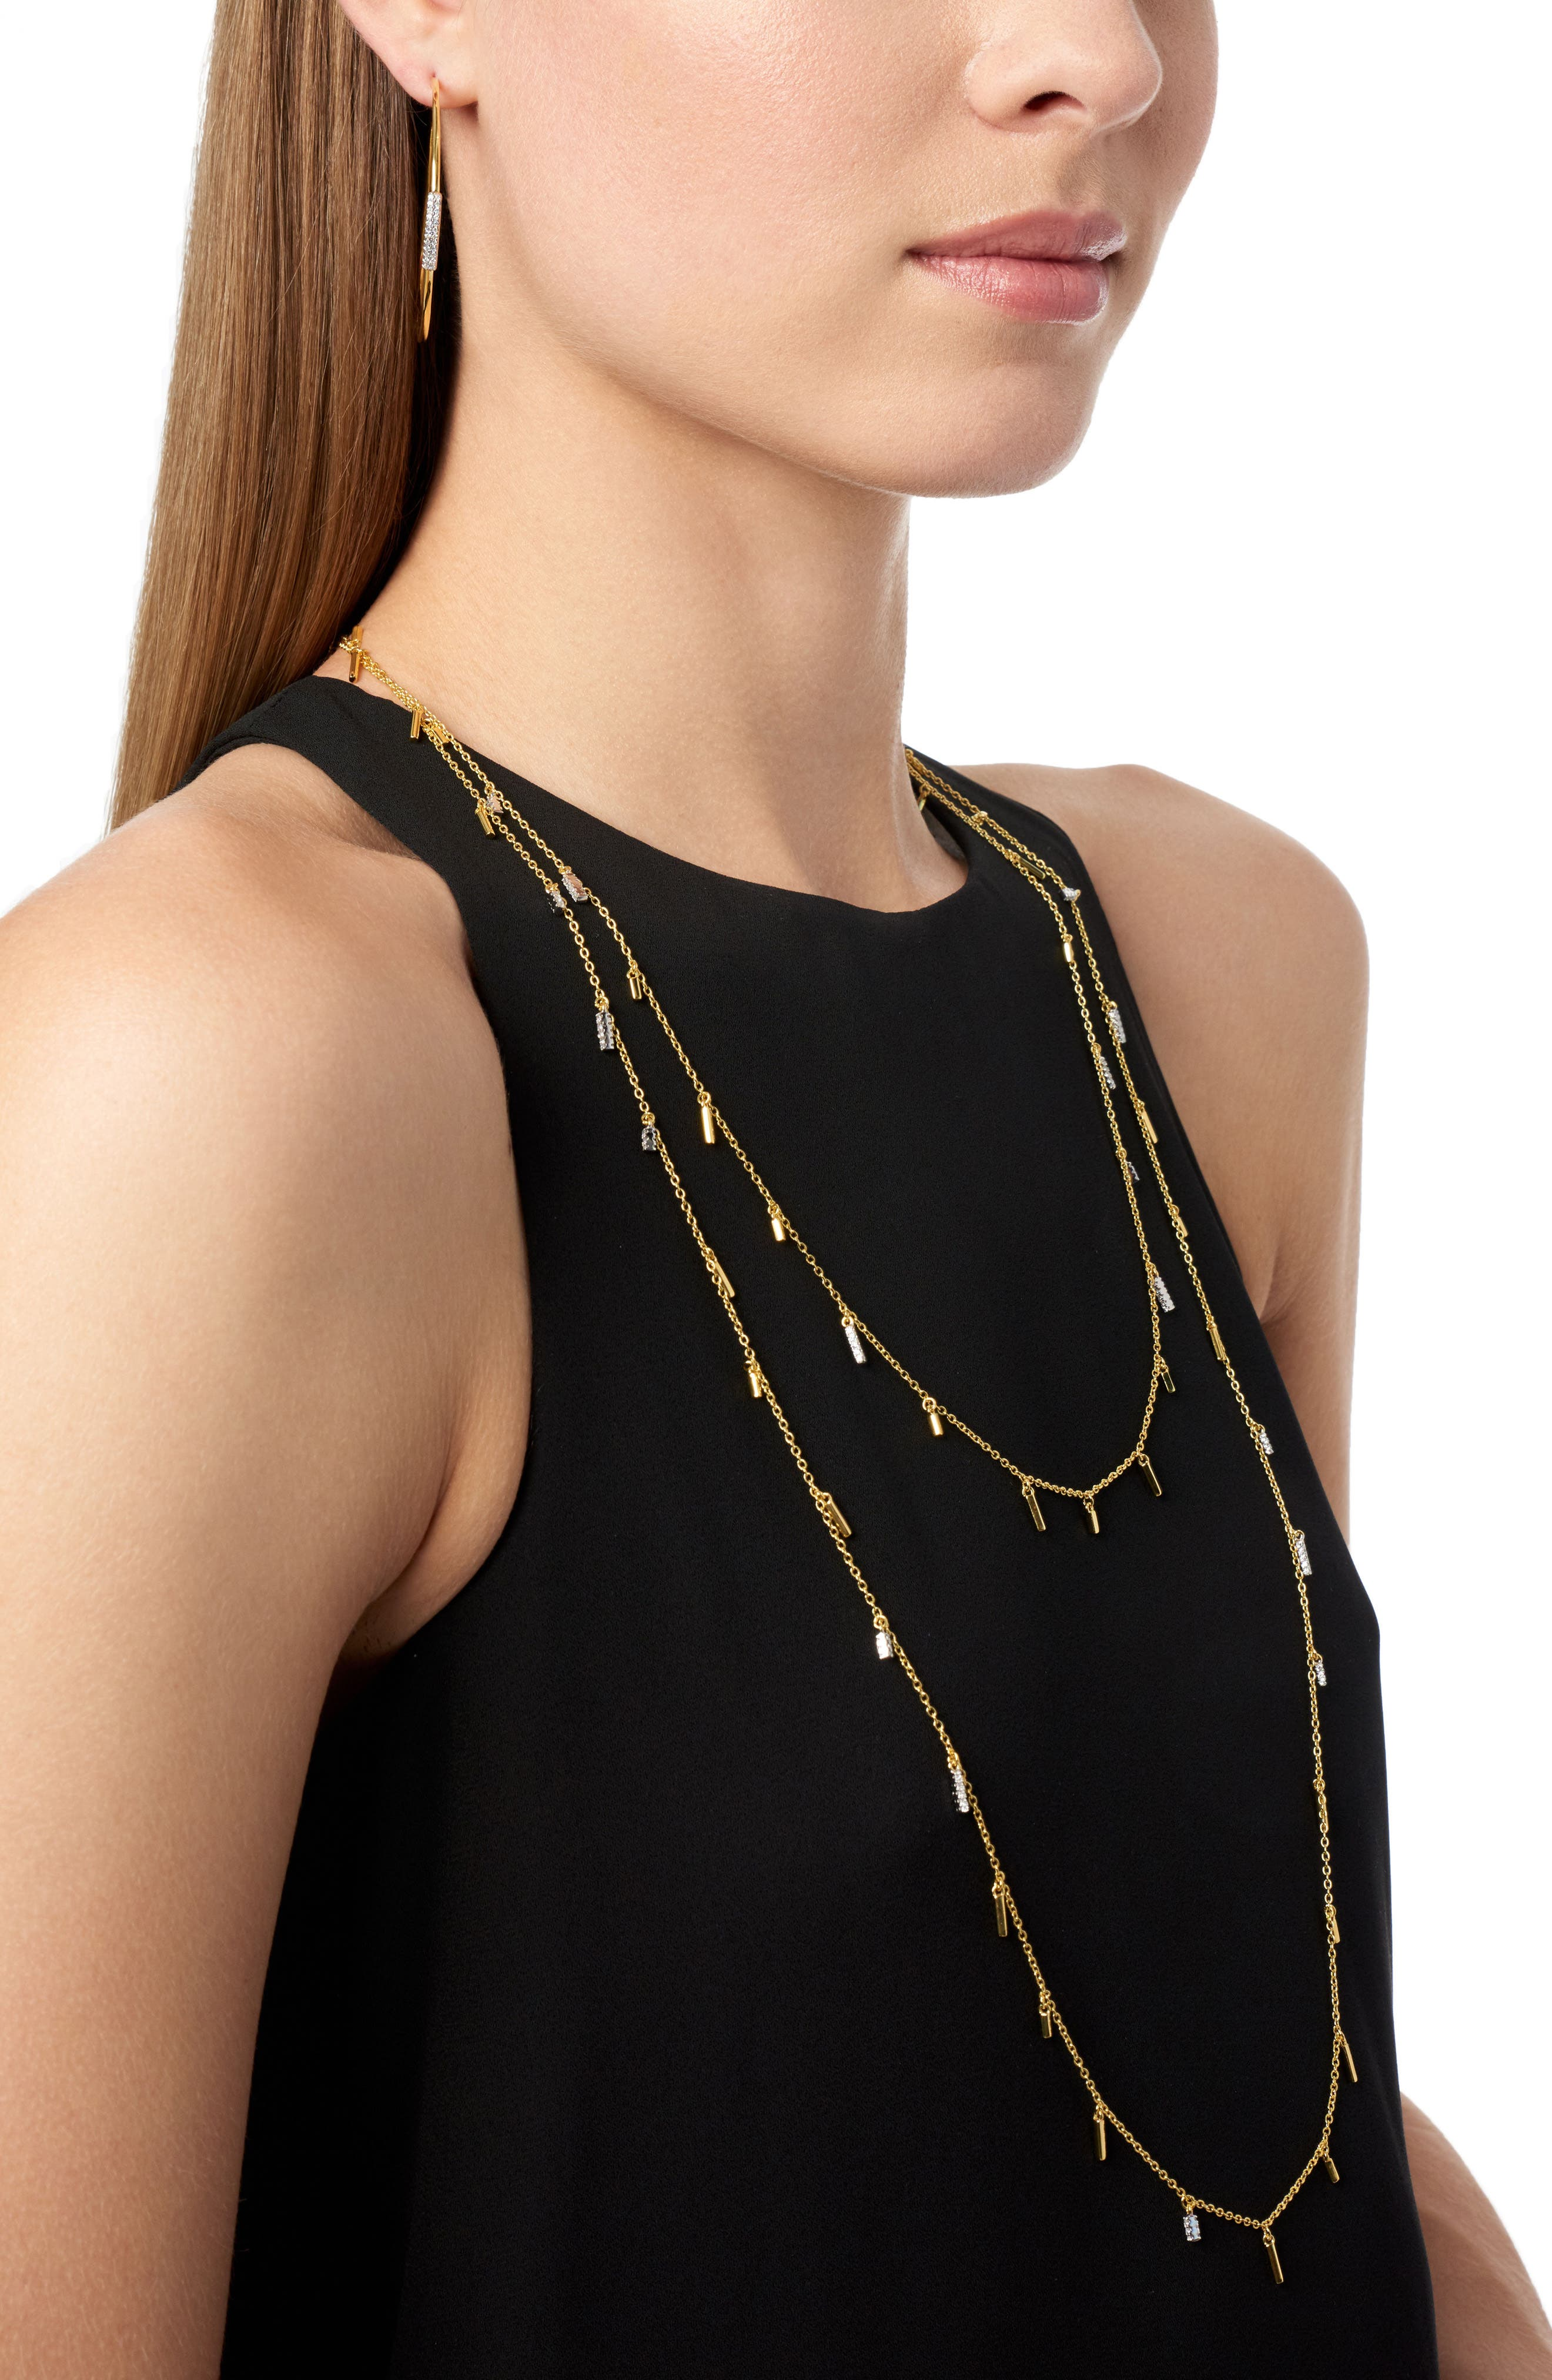 Radiance Droplet Cubic Zirconia Station Necklace,                             Alternate thumbnail 4, color,                             Silver/ Gold